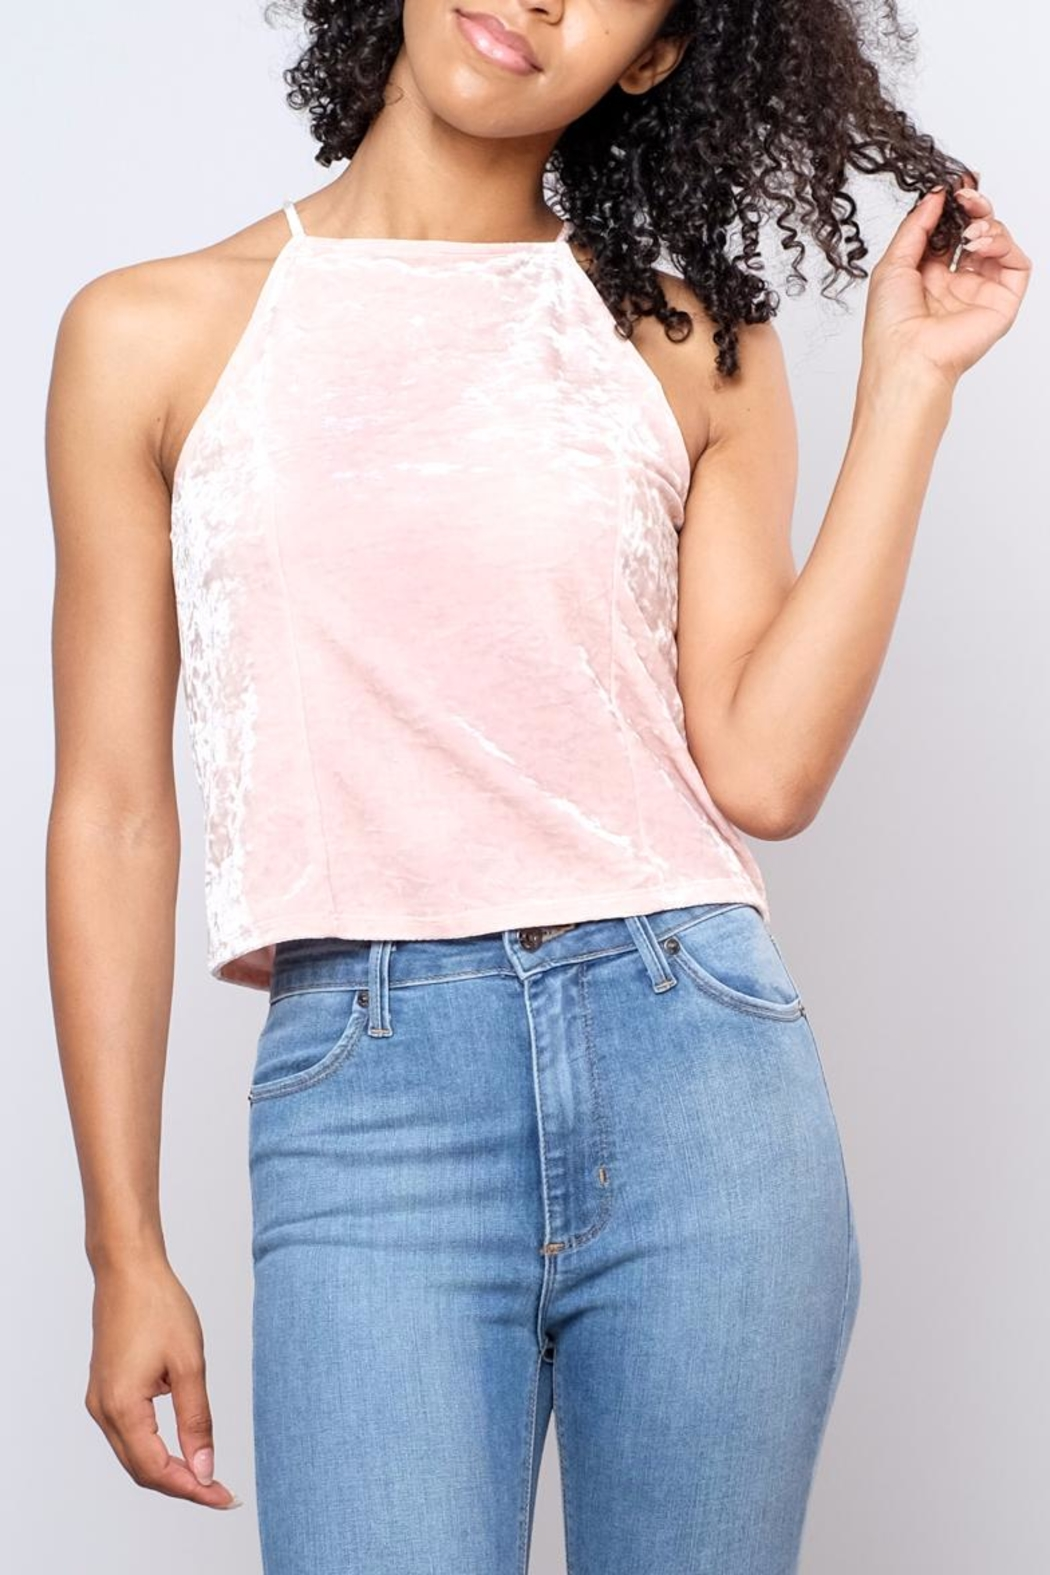 Mai Tai Velvet High Neck Top - Front Cropped Image